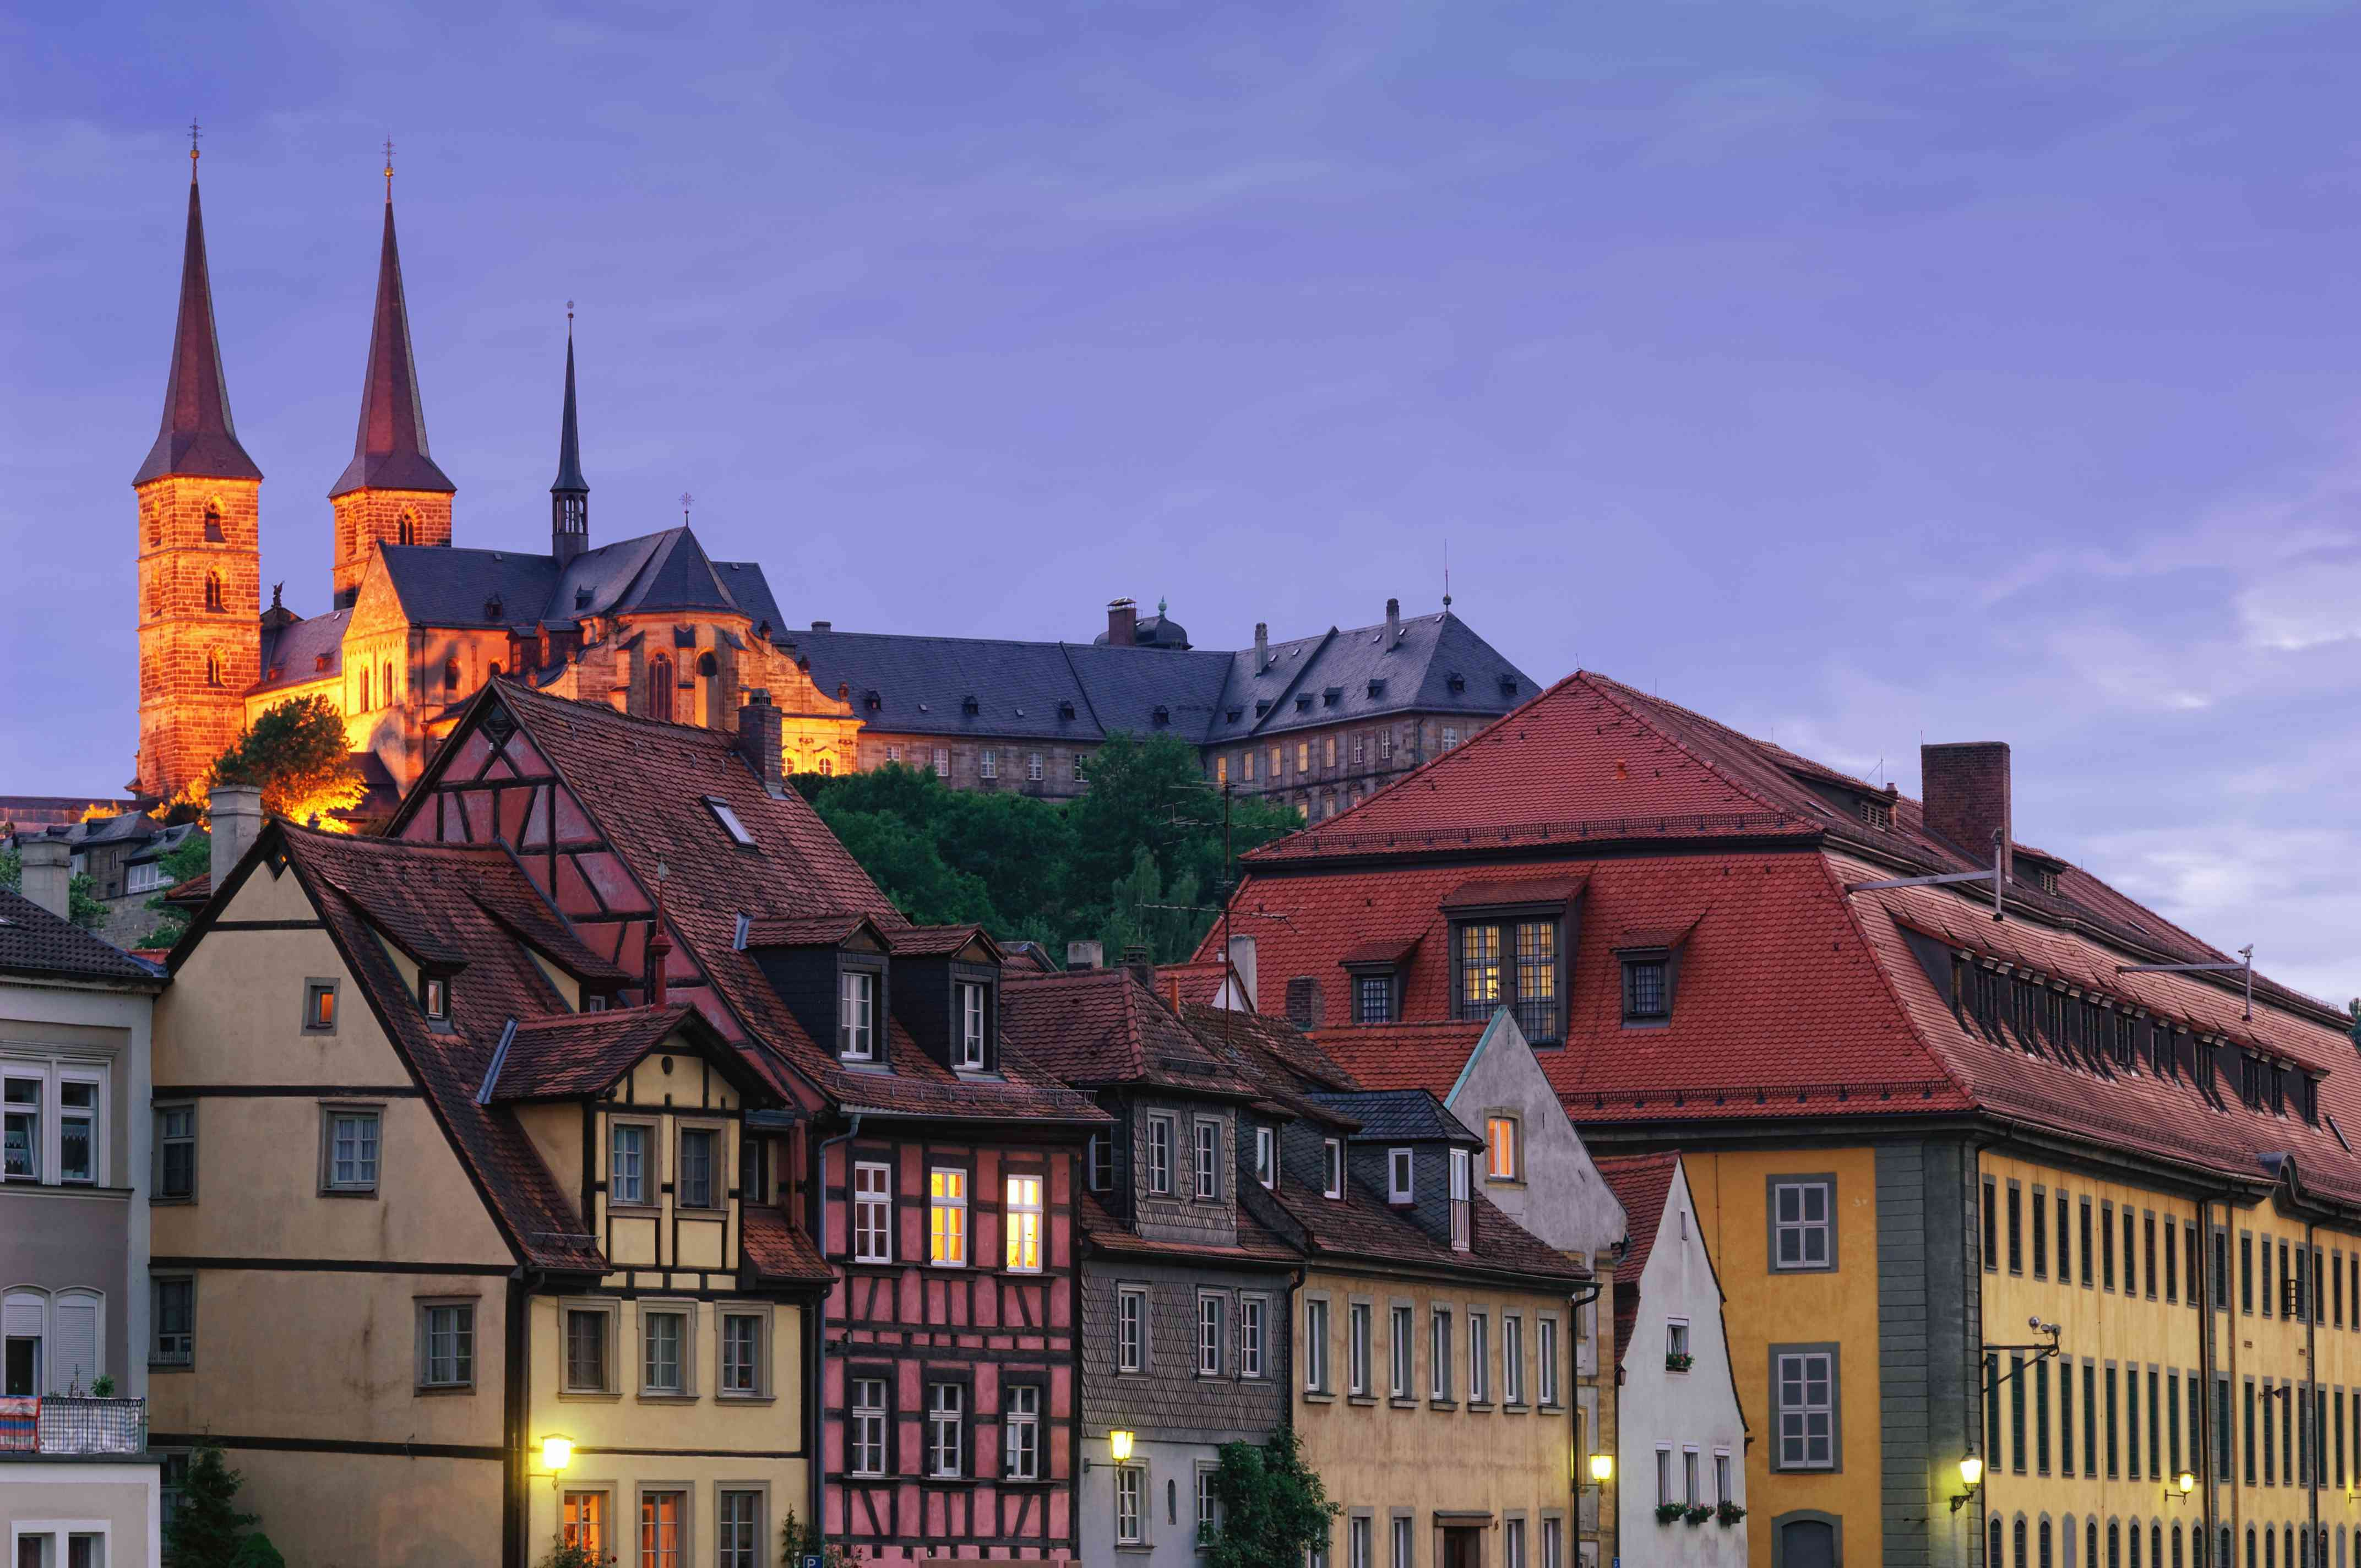 The Michaelsberg Abbey and the historic old town of Bamberg